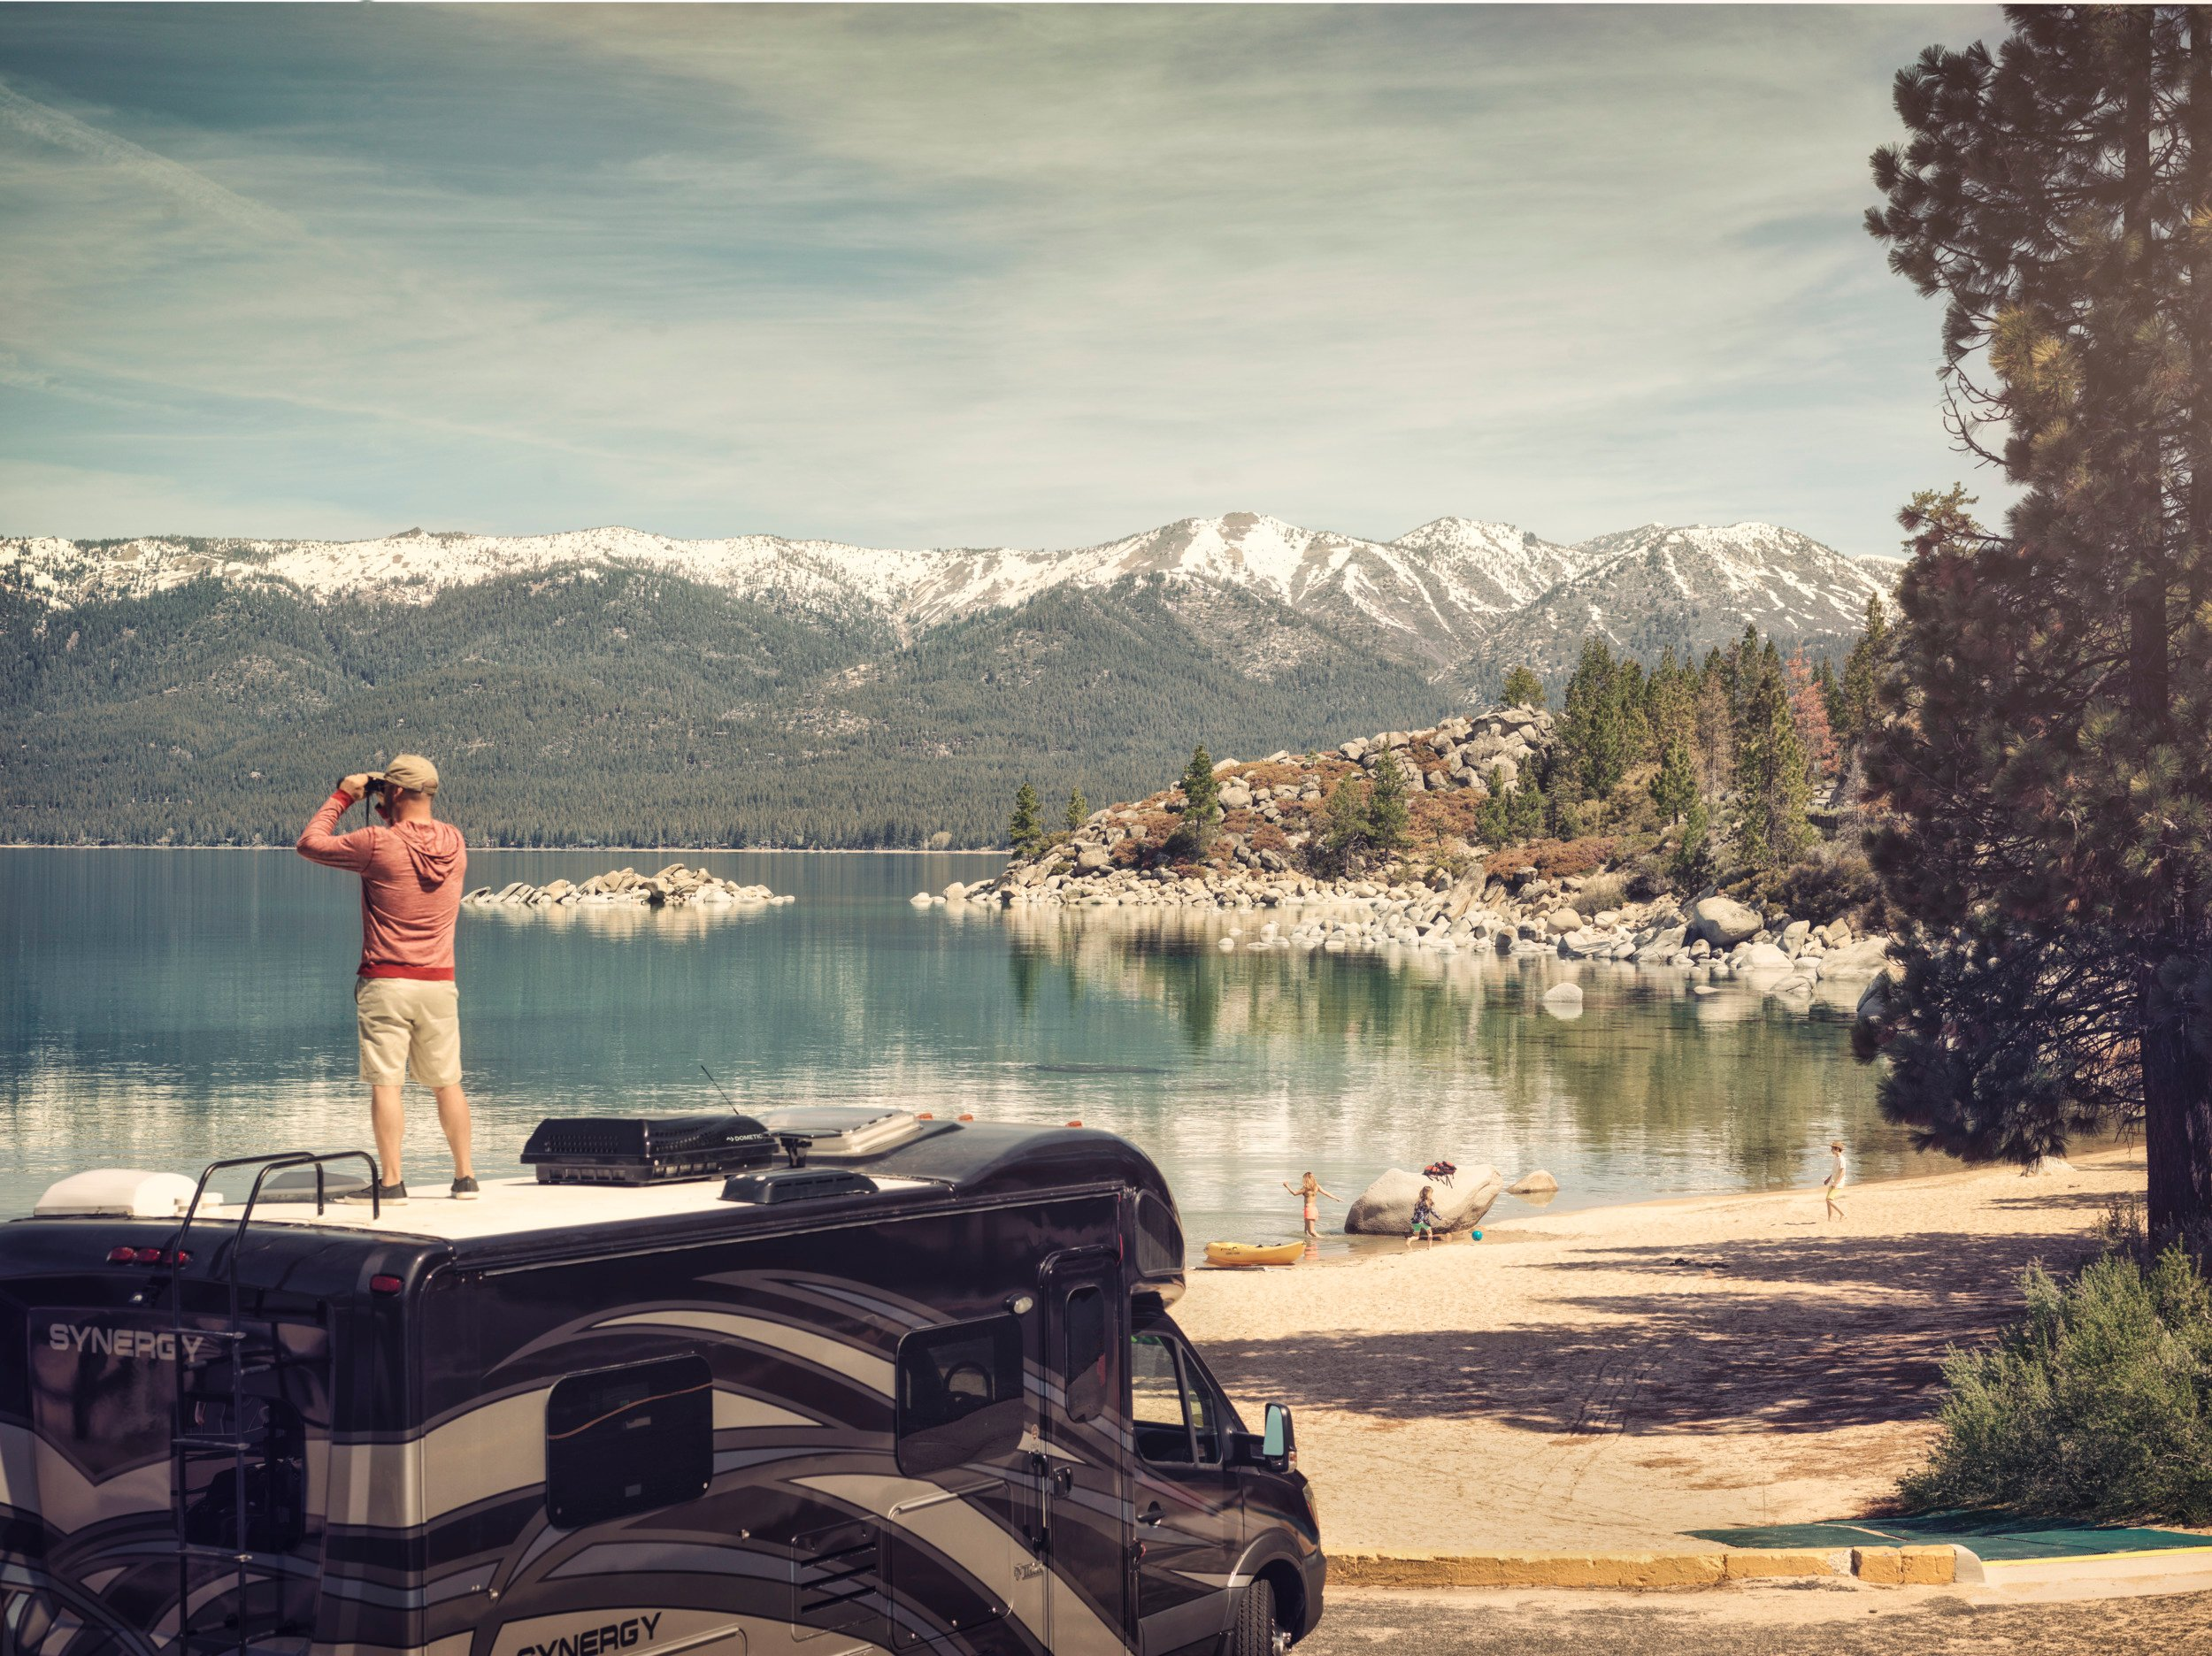 rv, motorhome, lakeside, lake, mountains, snow, skiing, snowboarding, nature, hike, view, binoculars, trees, forrest